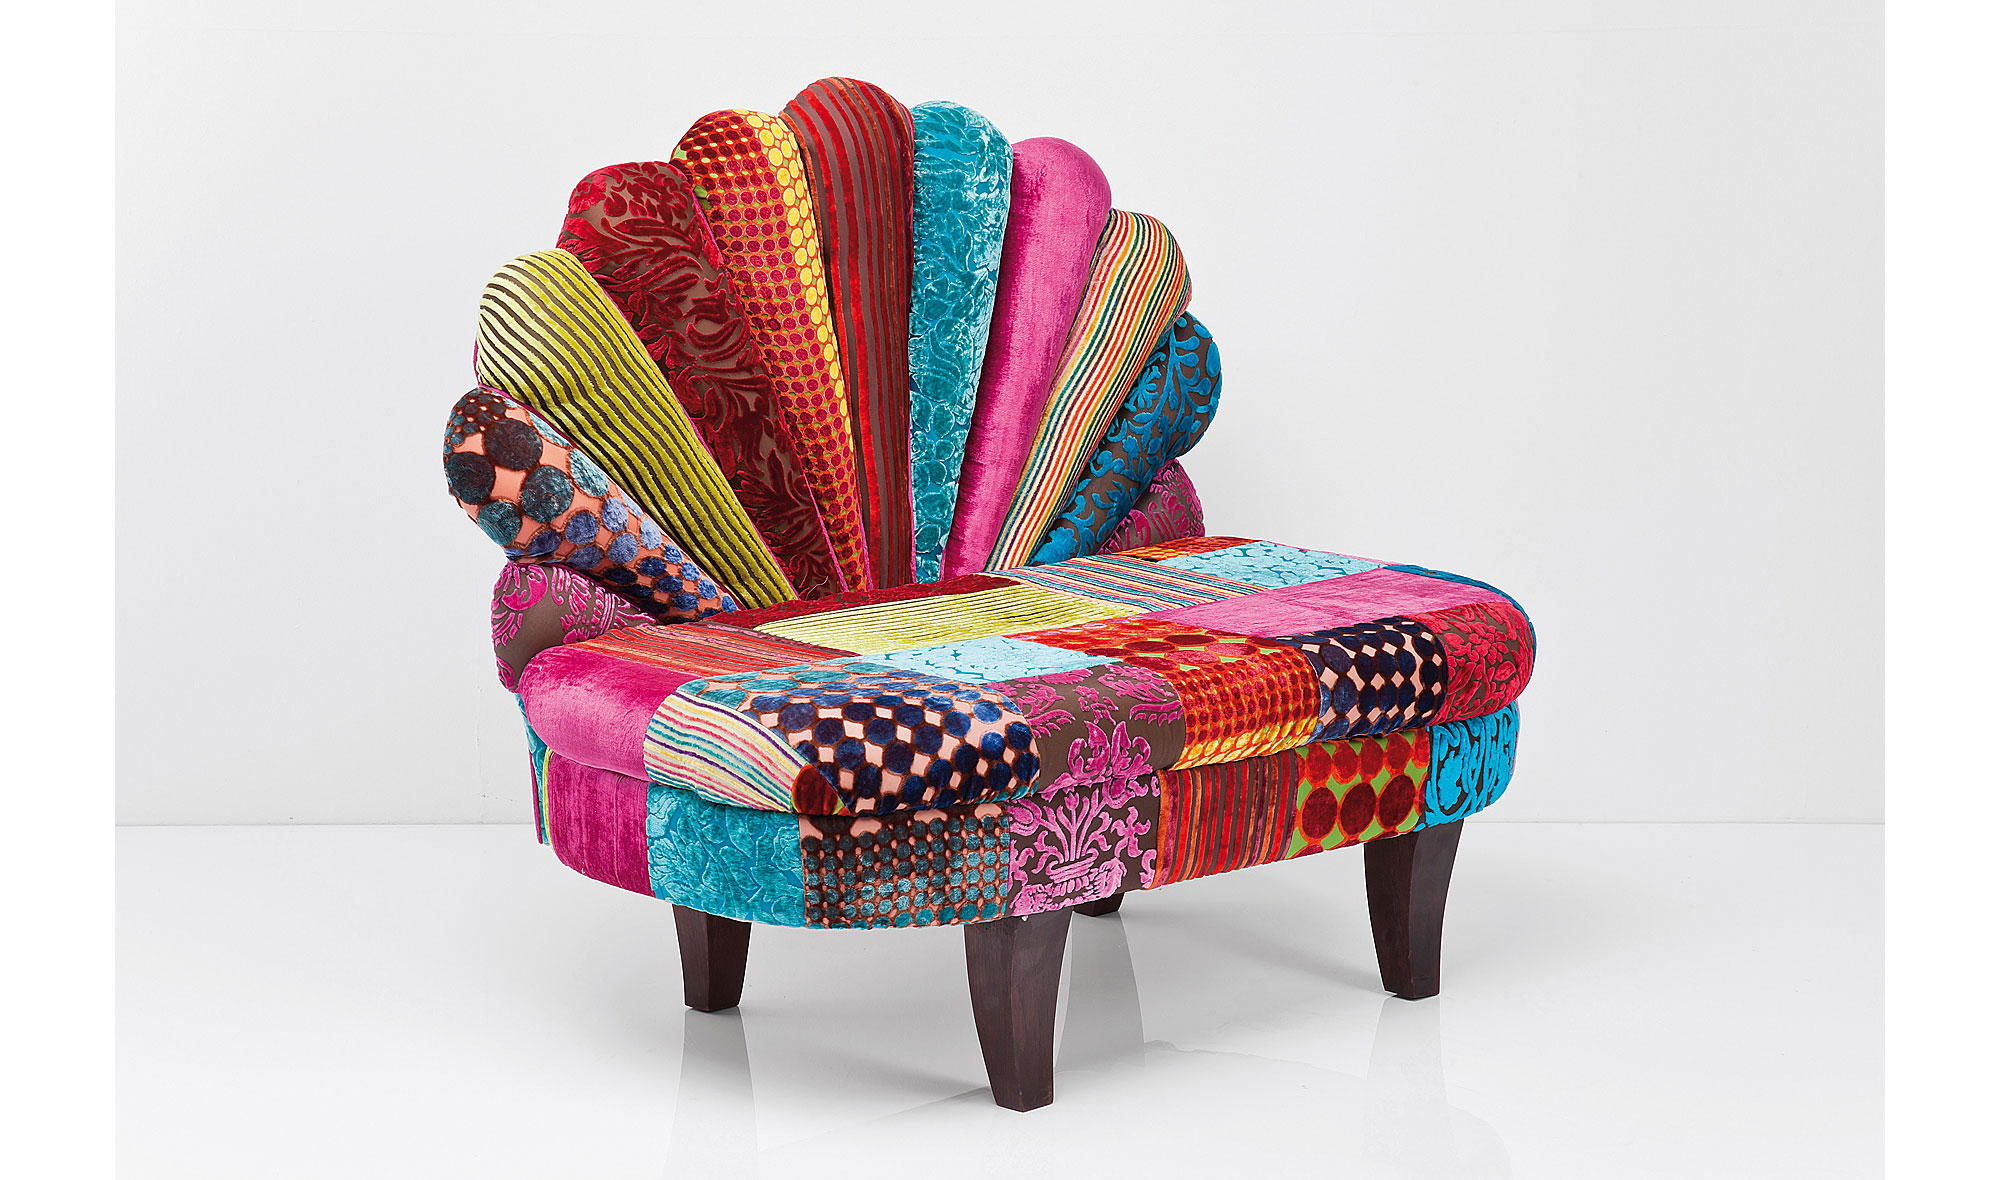 Peacock Muebles - Banco Patchwork Peacock En Cosas De Arquitectoscosas De Arquitectos[mjhdah]http://idolza.com/a/f/c/combinar-muebles-antiguos-con-modernos-tips-home-sweet-pinterest-and-html_creative-office-ideas_home-ideas-design-interior-decorating-tips-latest-of-house-architectural-plans-inspiration-for.jpg